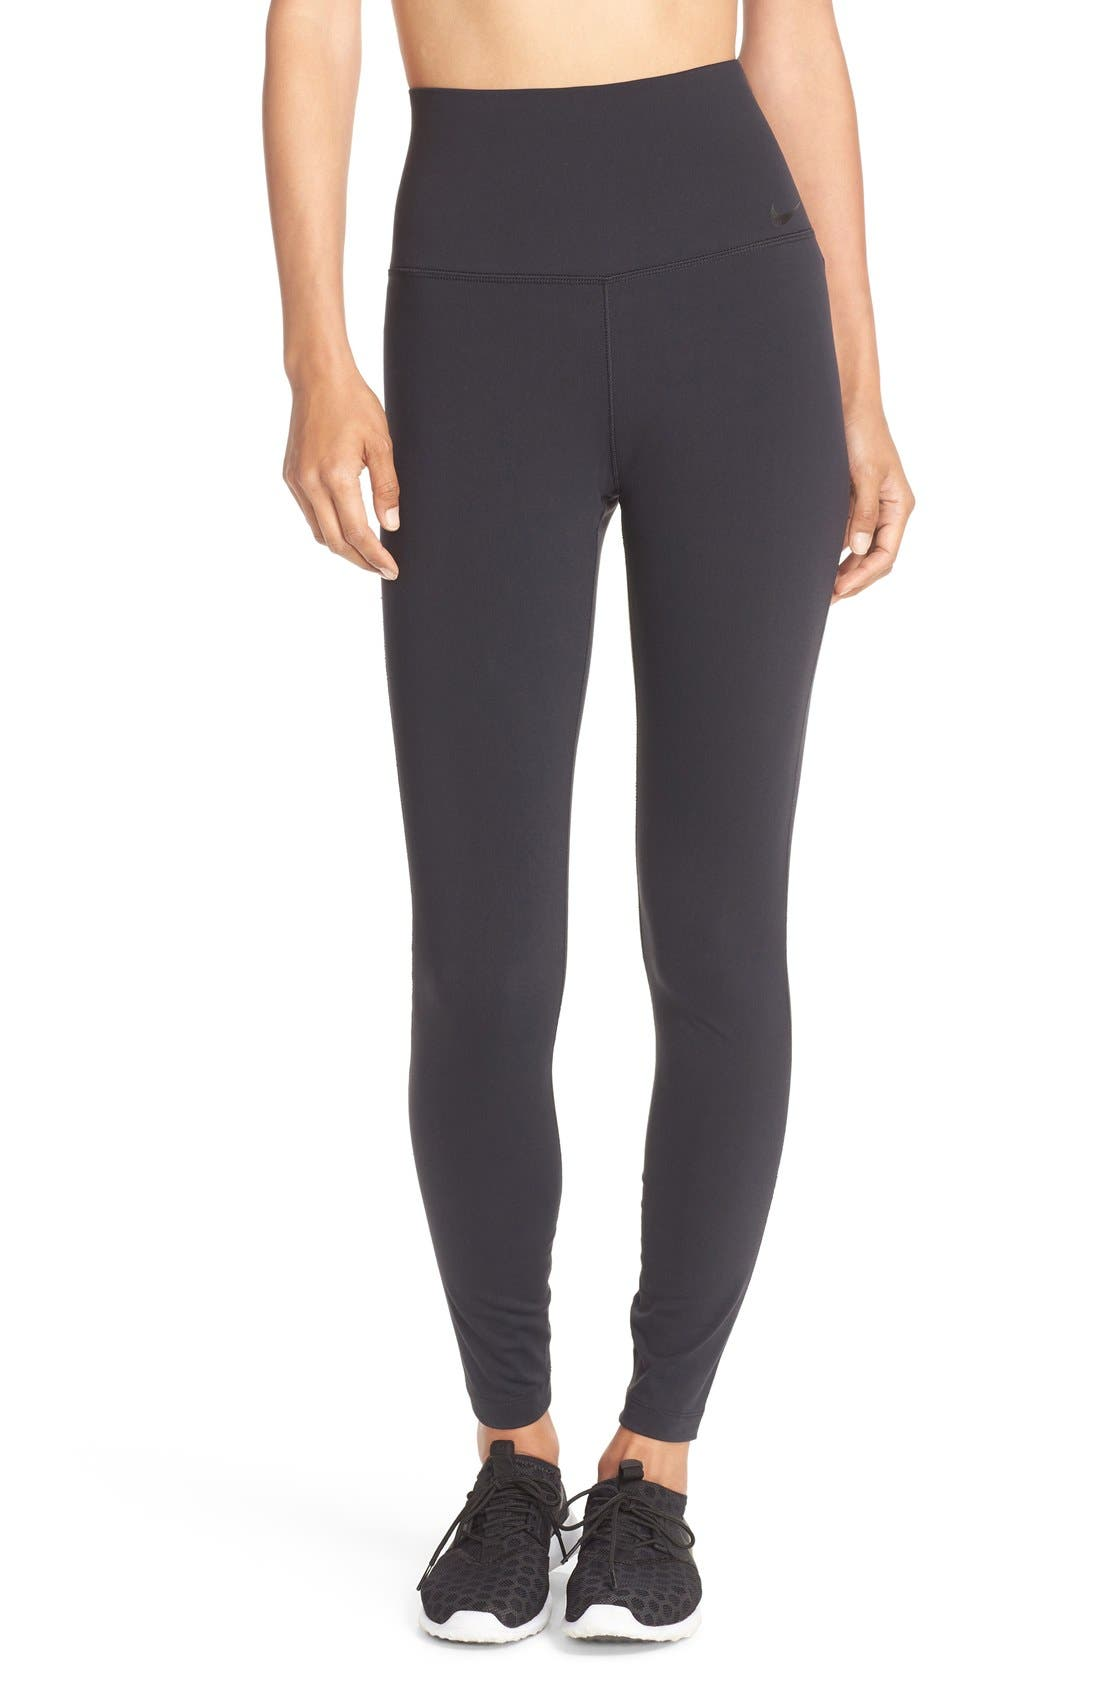 Nike Power Legendary High Waist Tights